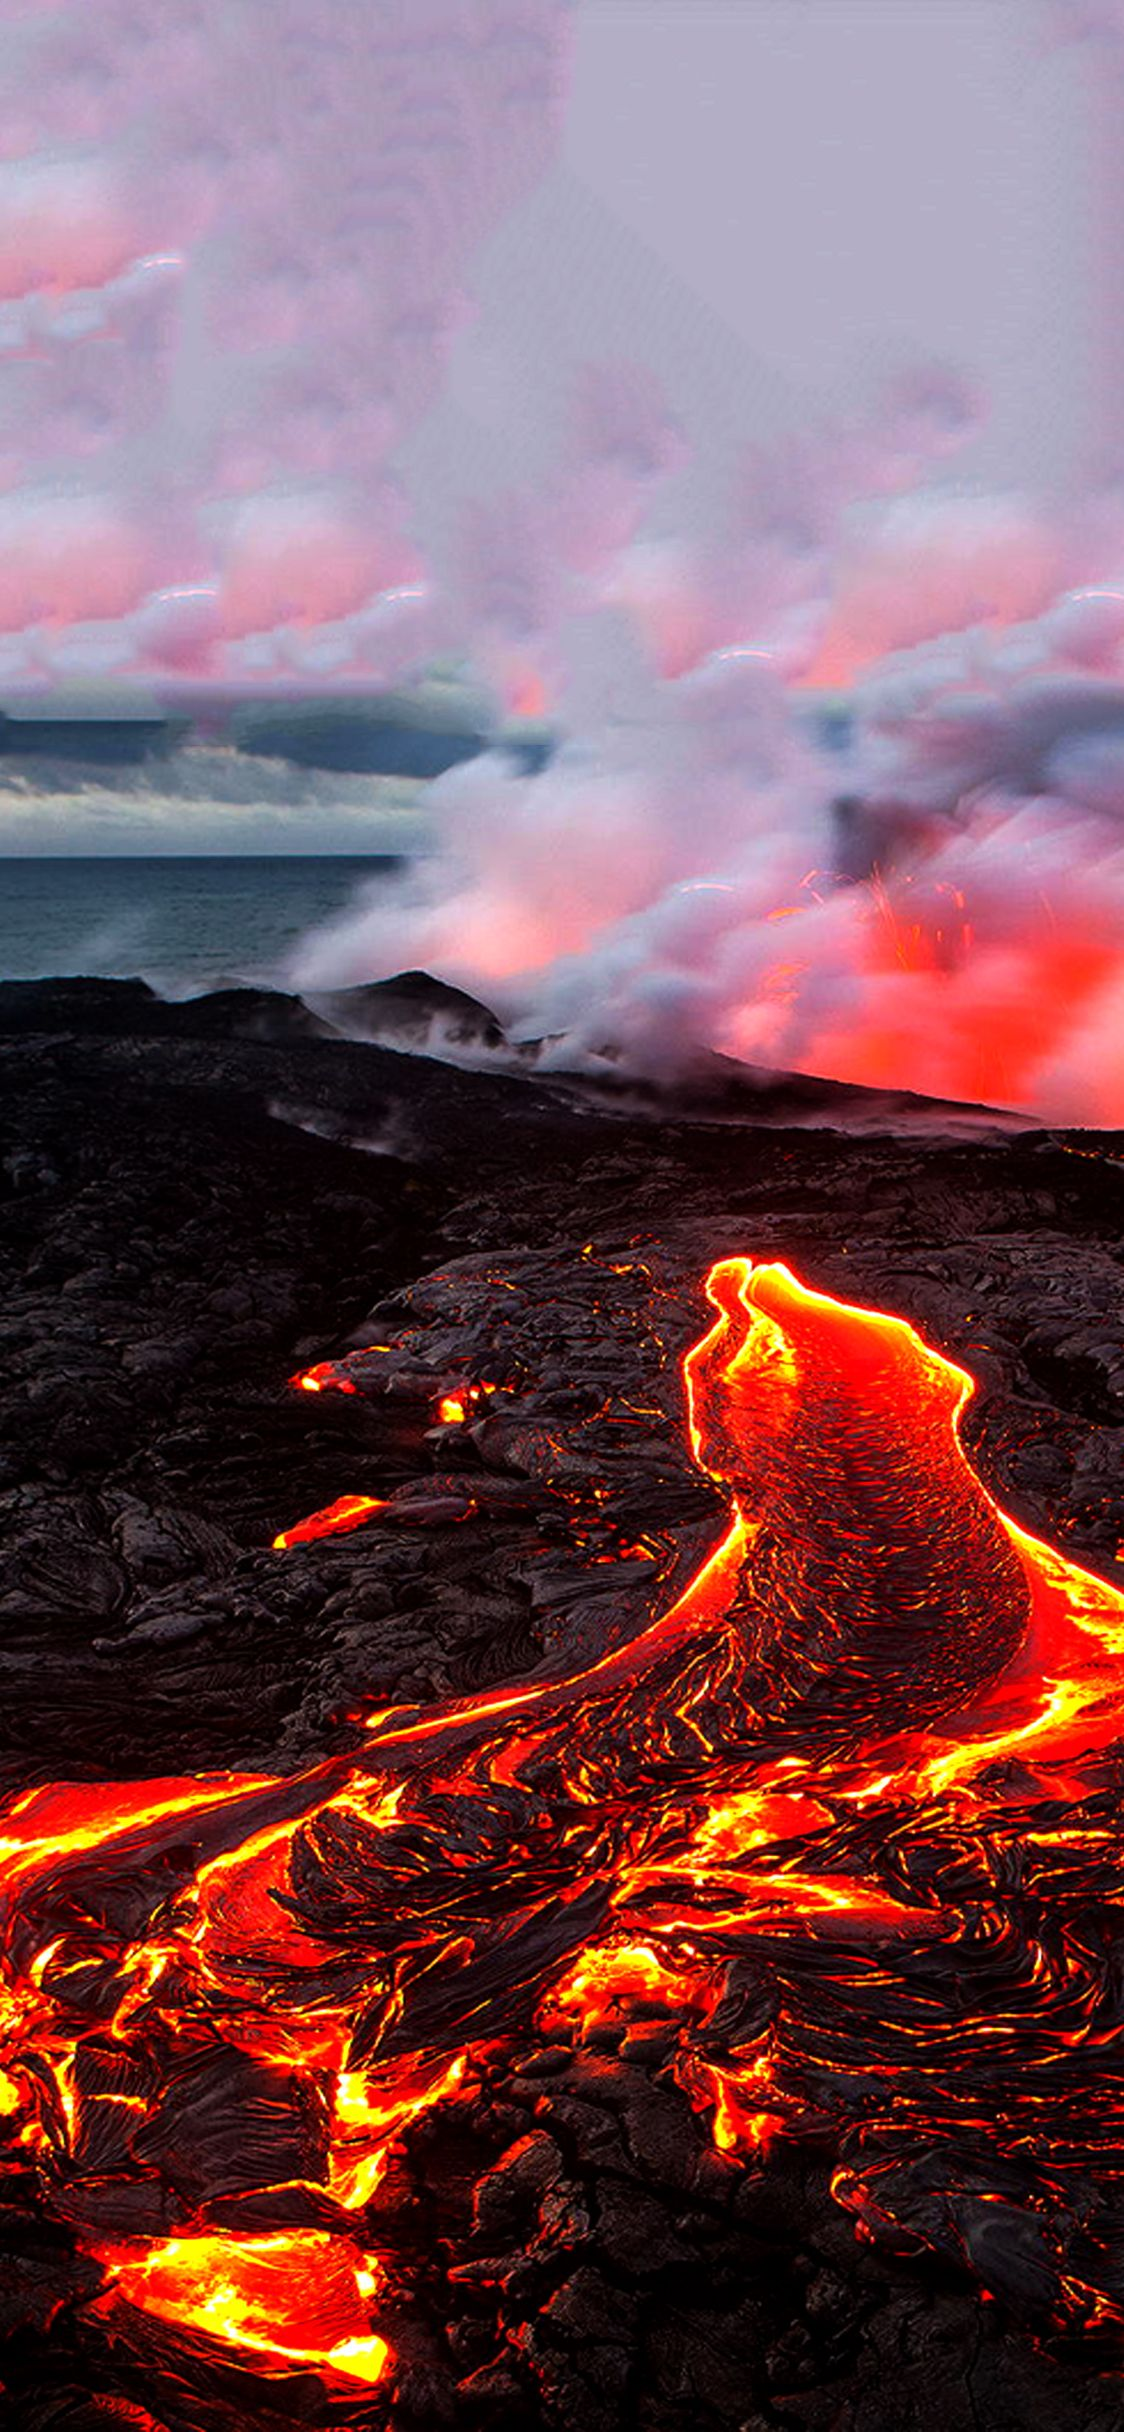 Best Volcano Wallpaper For Iphone X Ioswall Volcano Wallpaper Hipster Phone Wallpaper Iphone Wallpaper Hipster